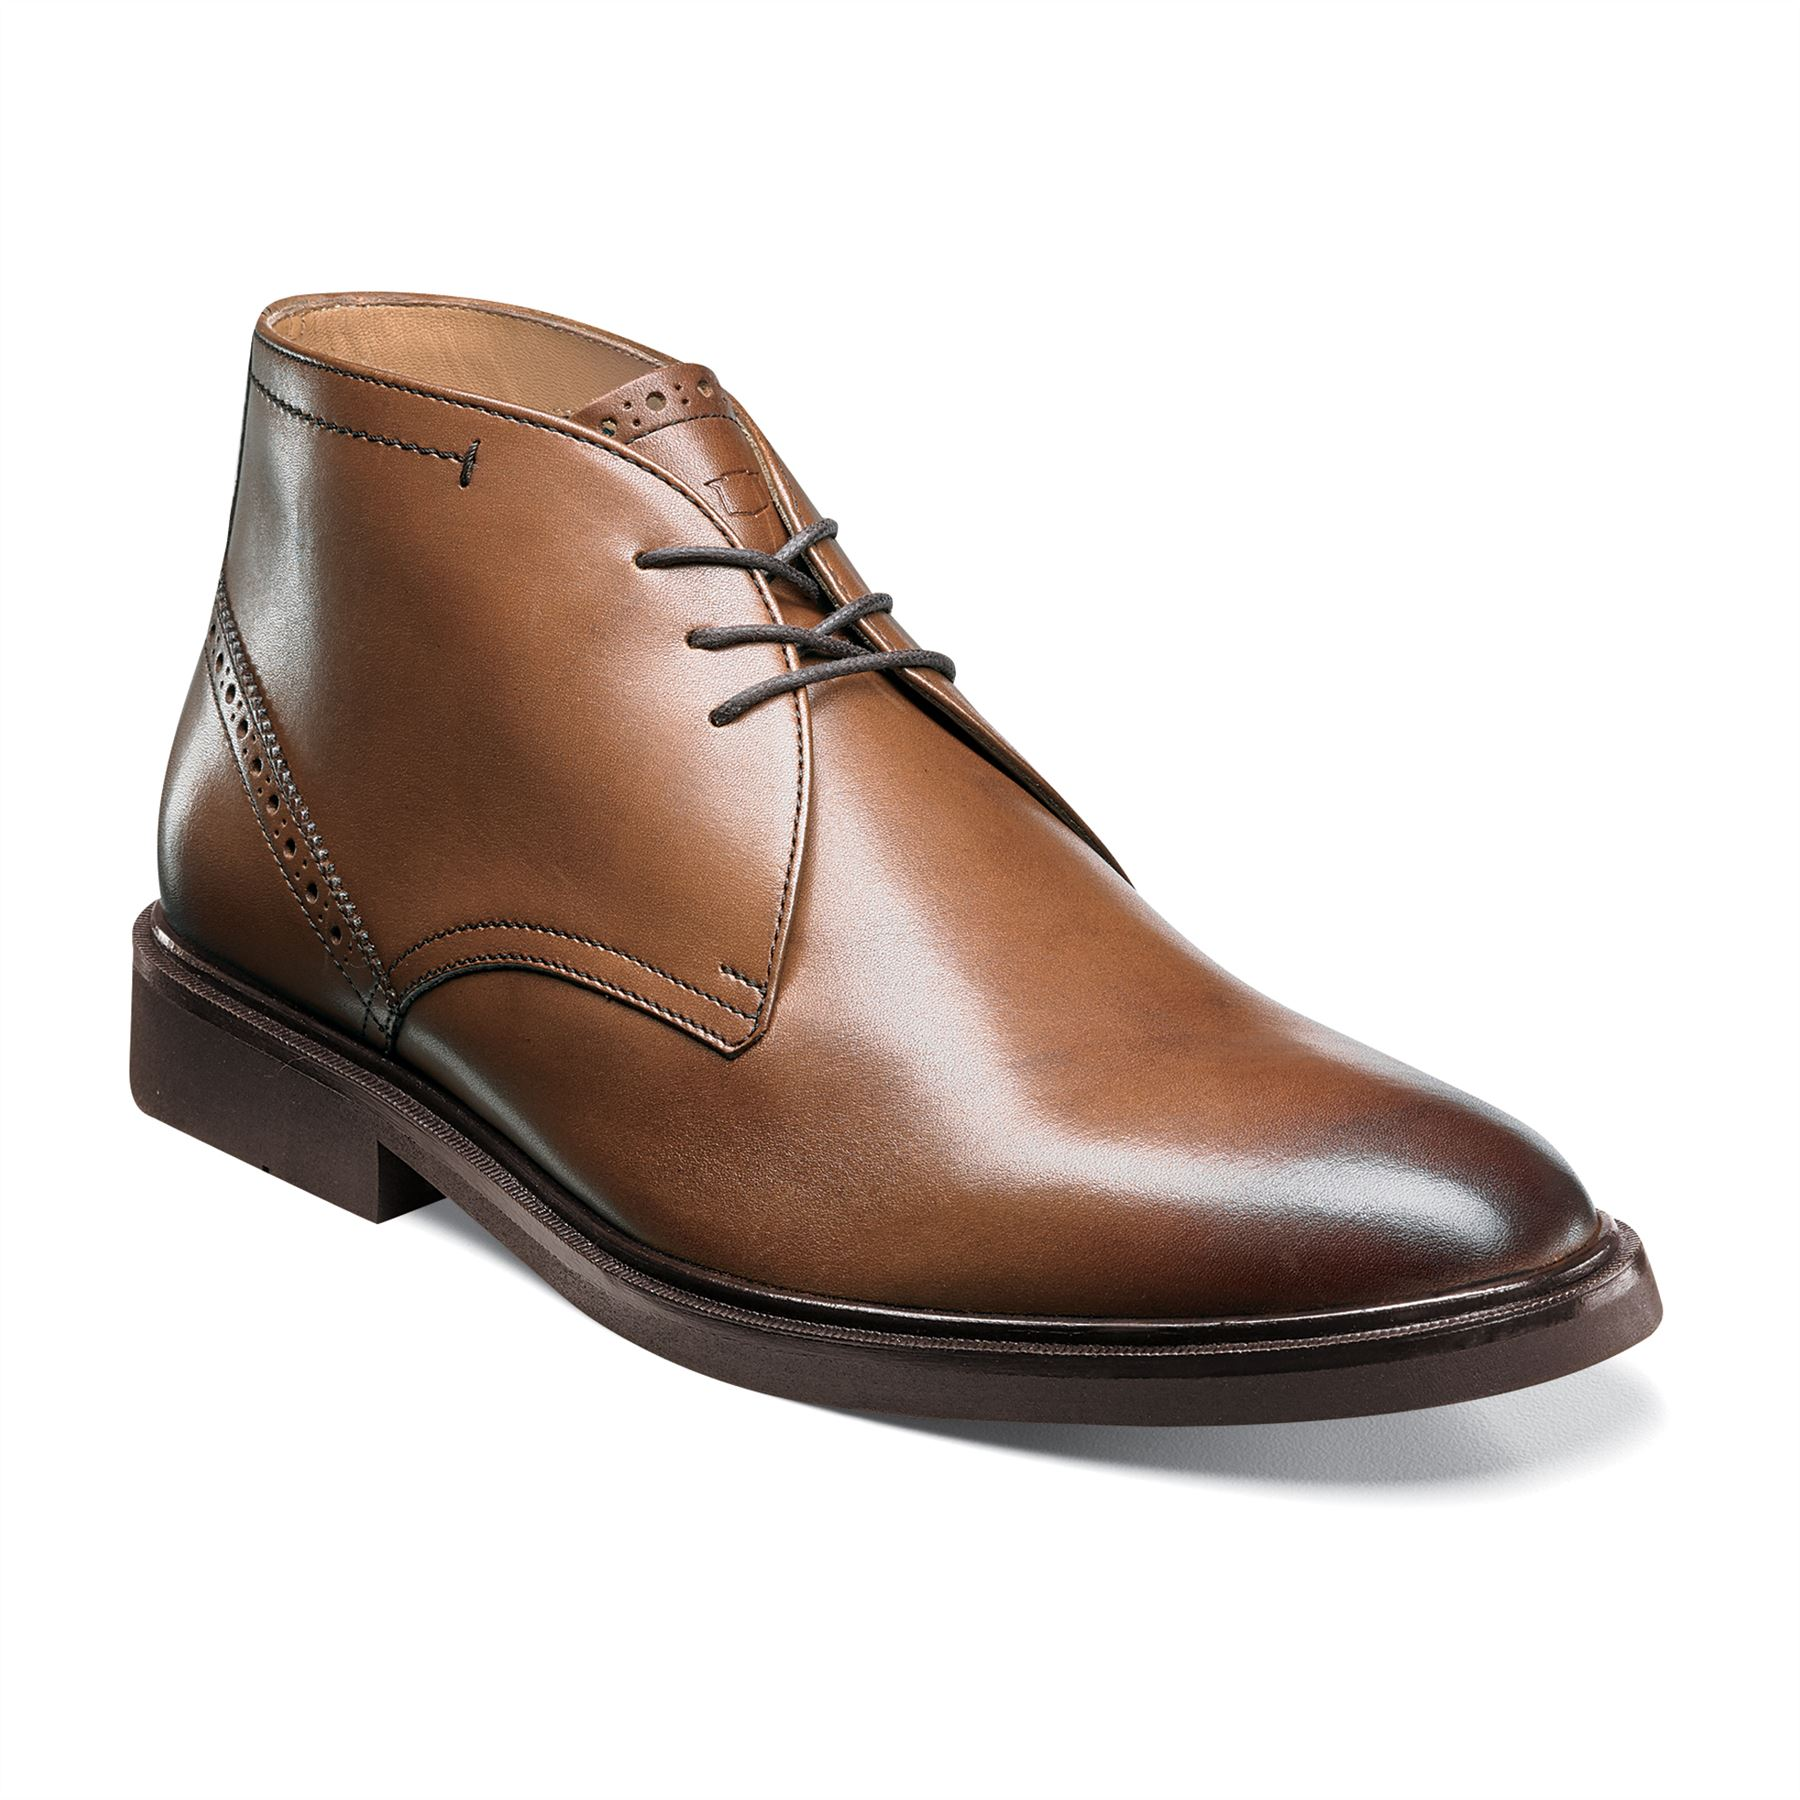 style 6441 dress shoes